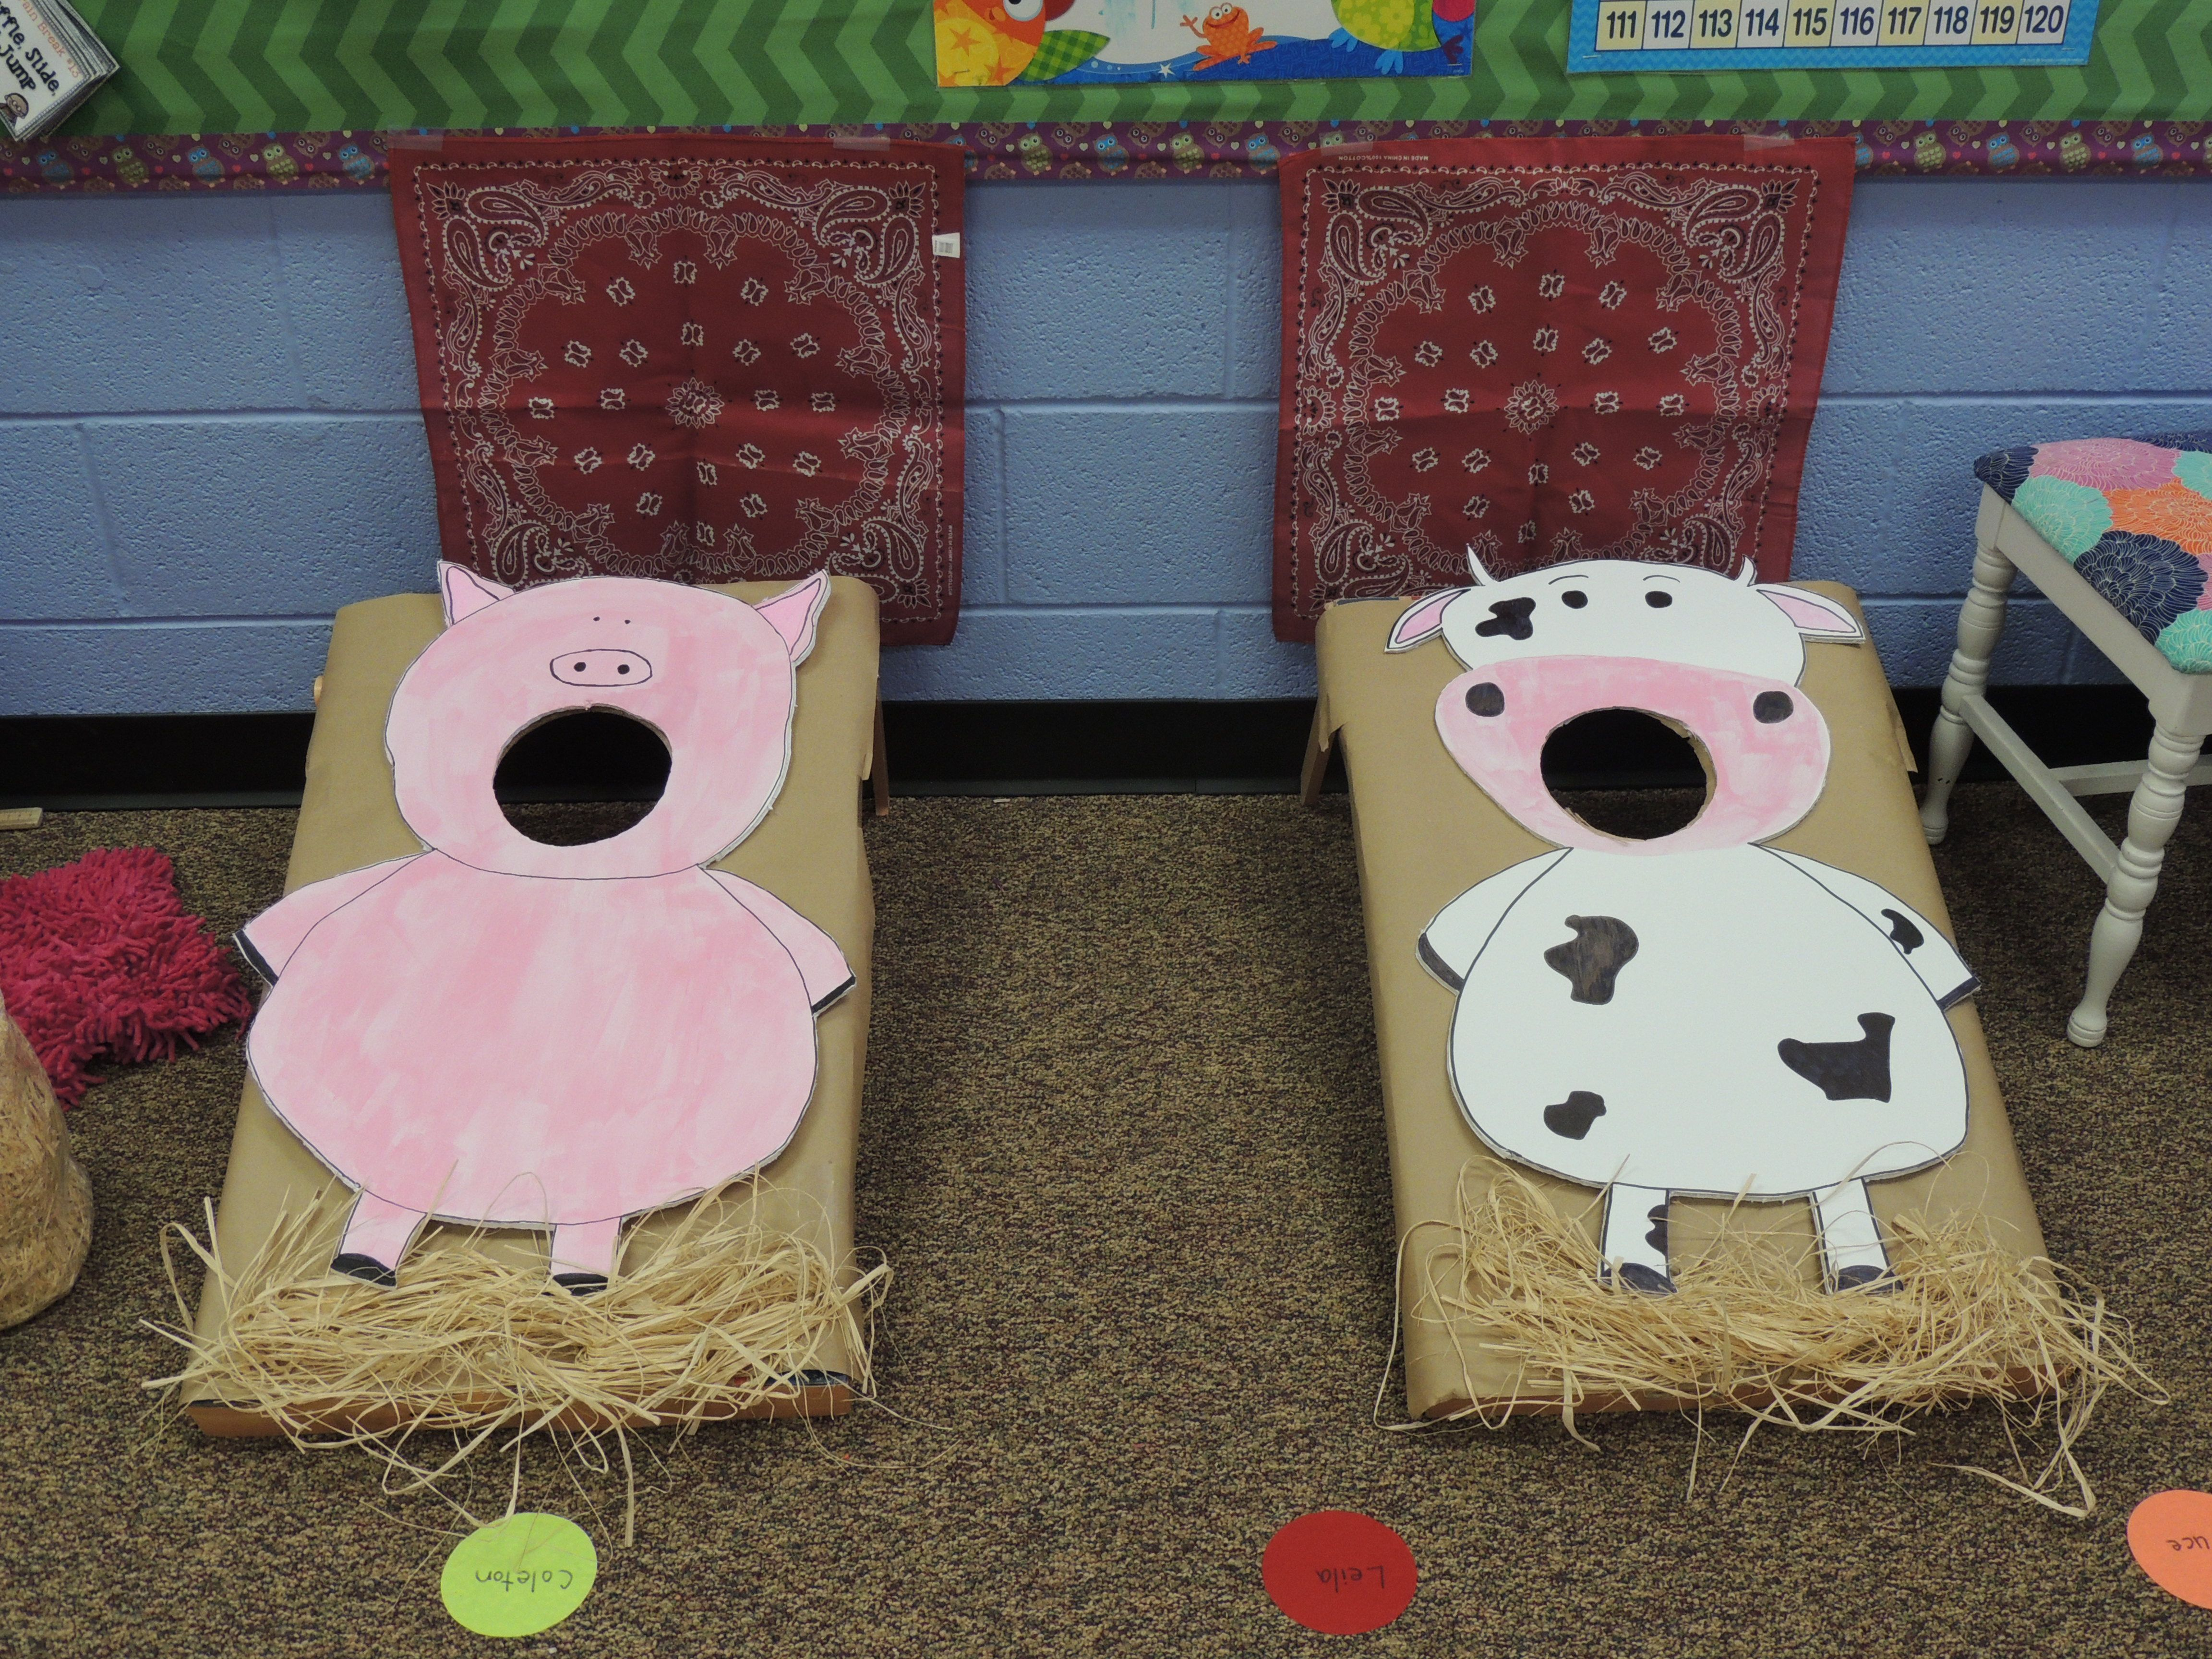 Feed the cow and pig bean bag toss game for farm theme party in the ...